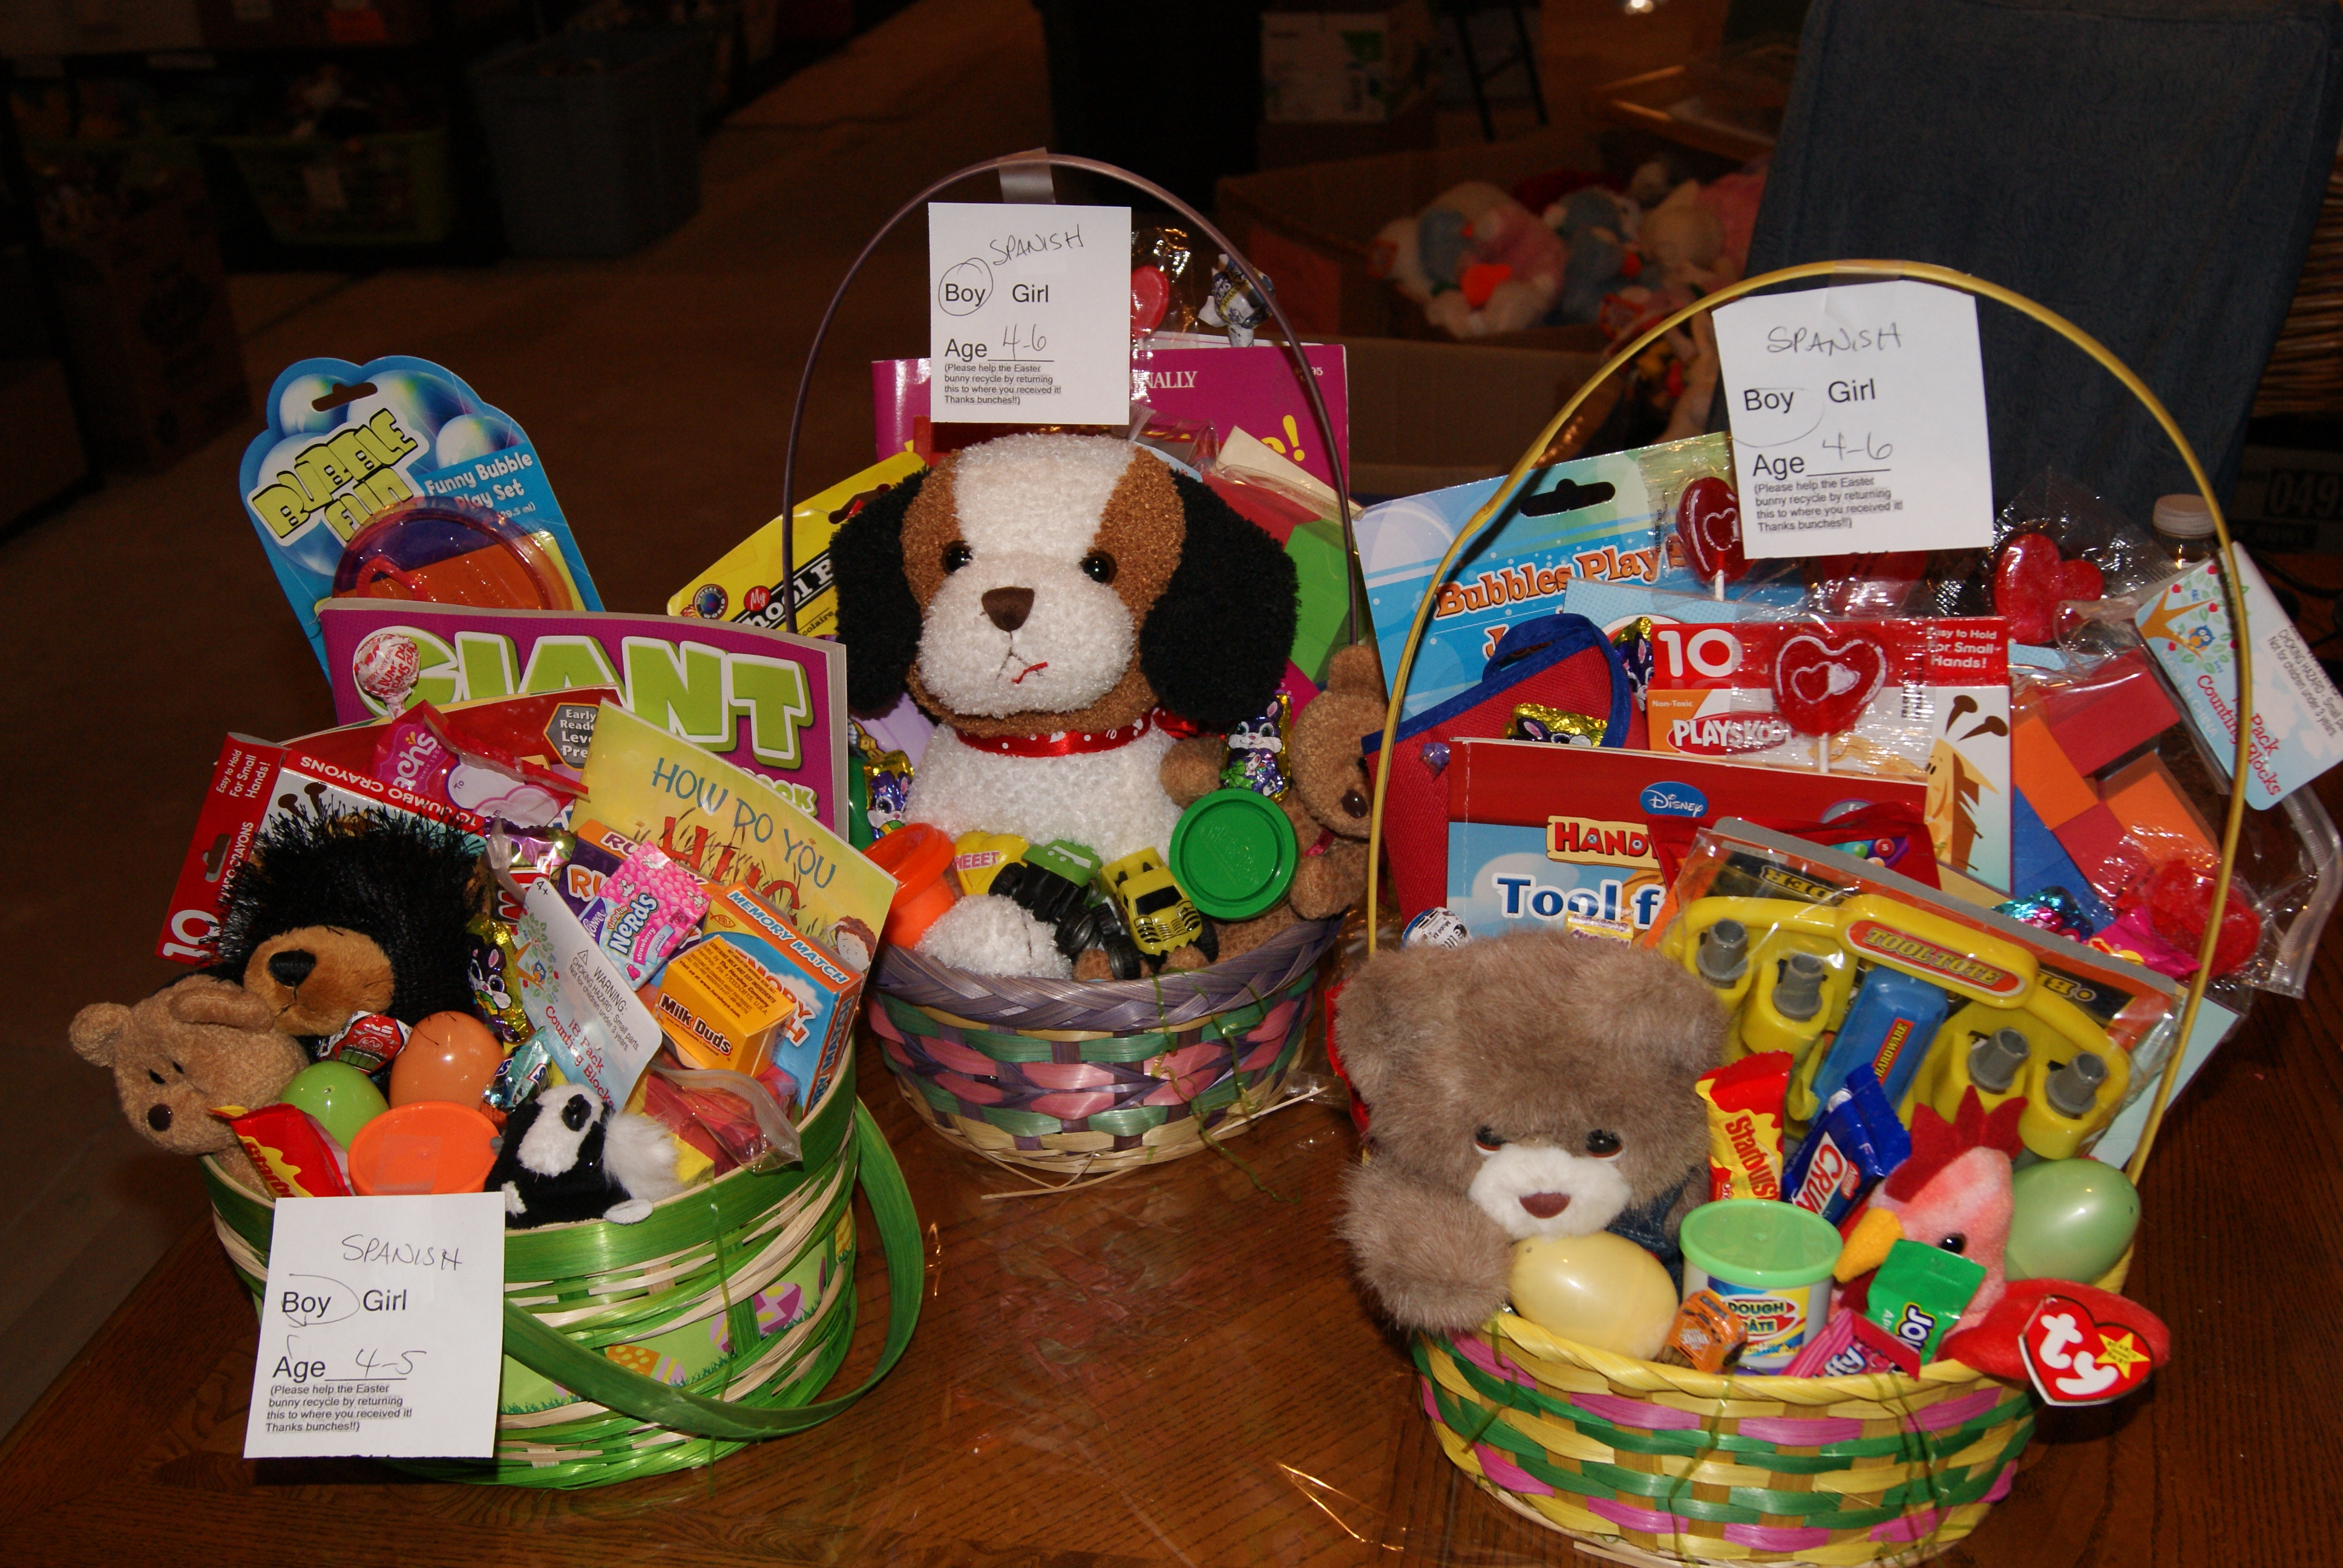 Easter baskets stuffed animals families building faith sony dsc negle Images